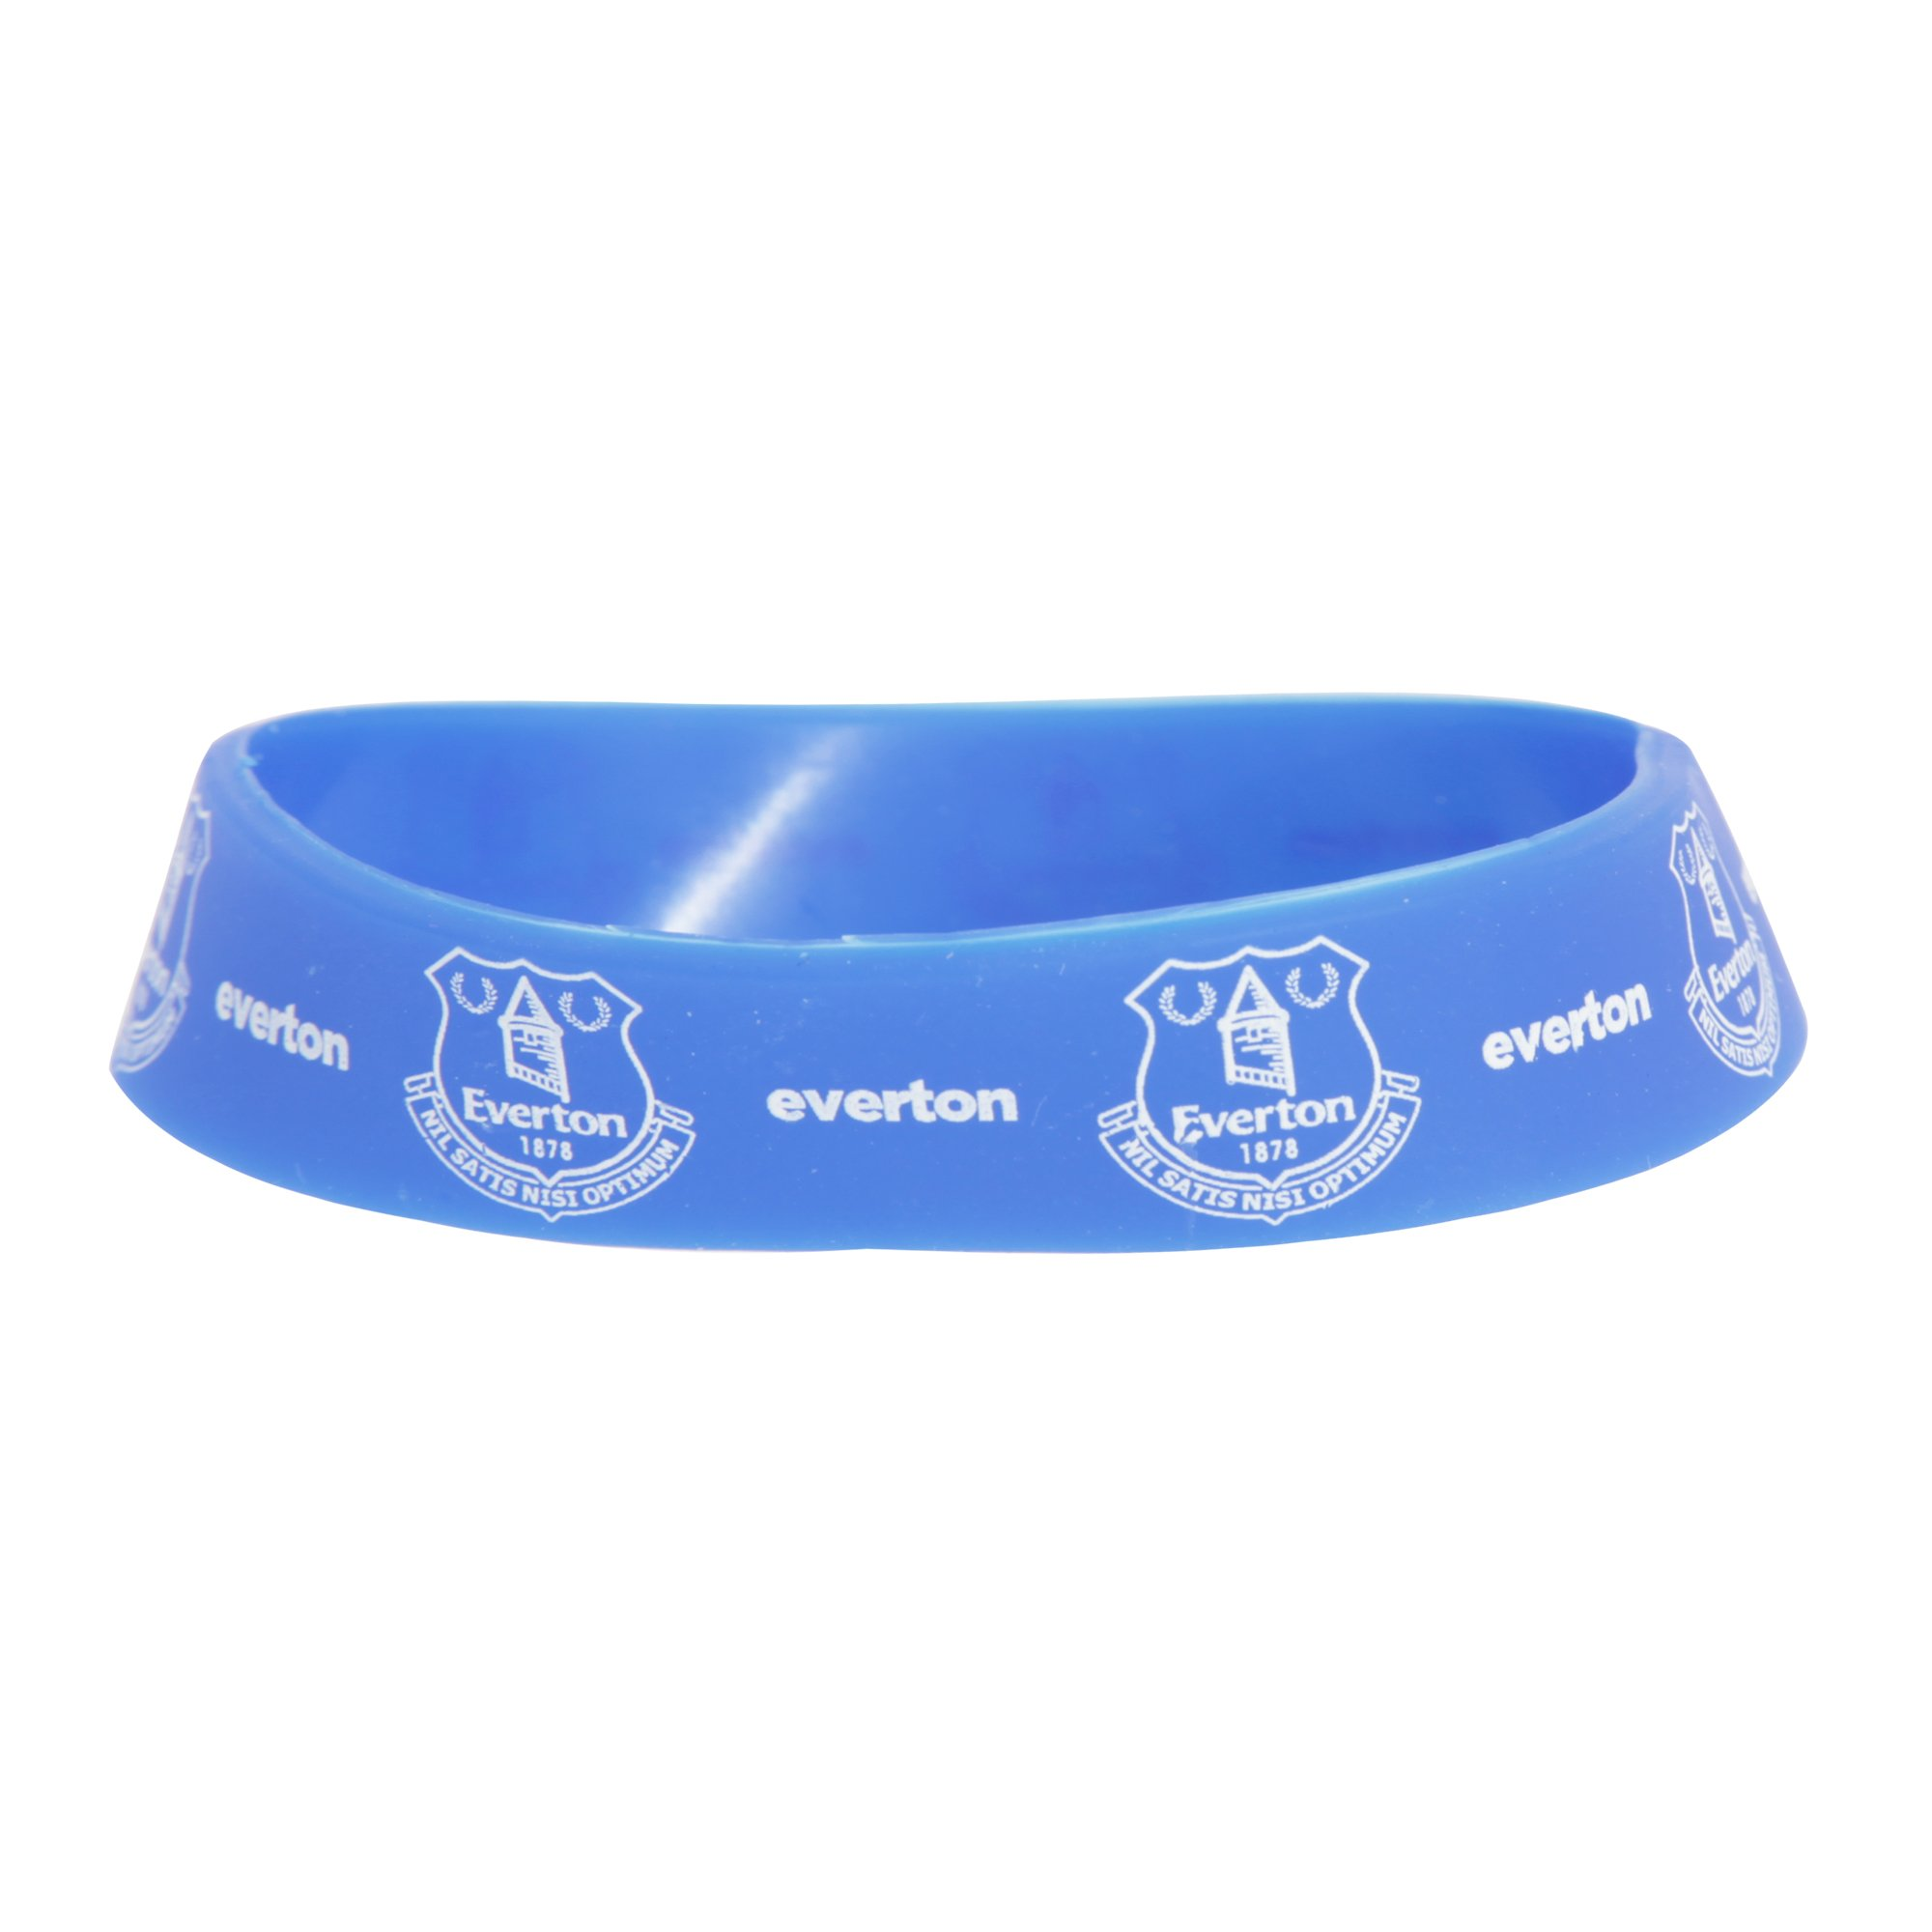 Everton FC Official Single Rubber Football Crest Wristband